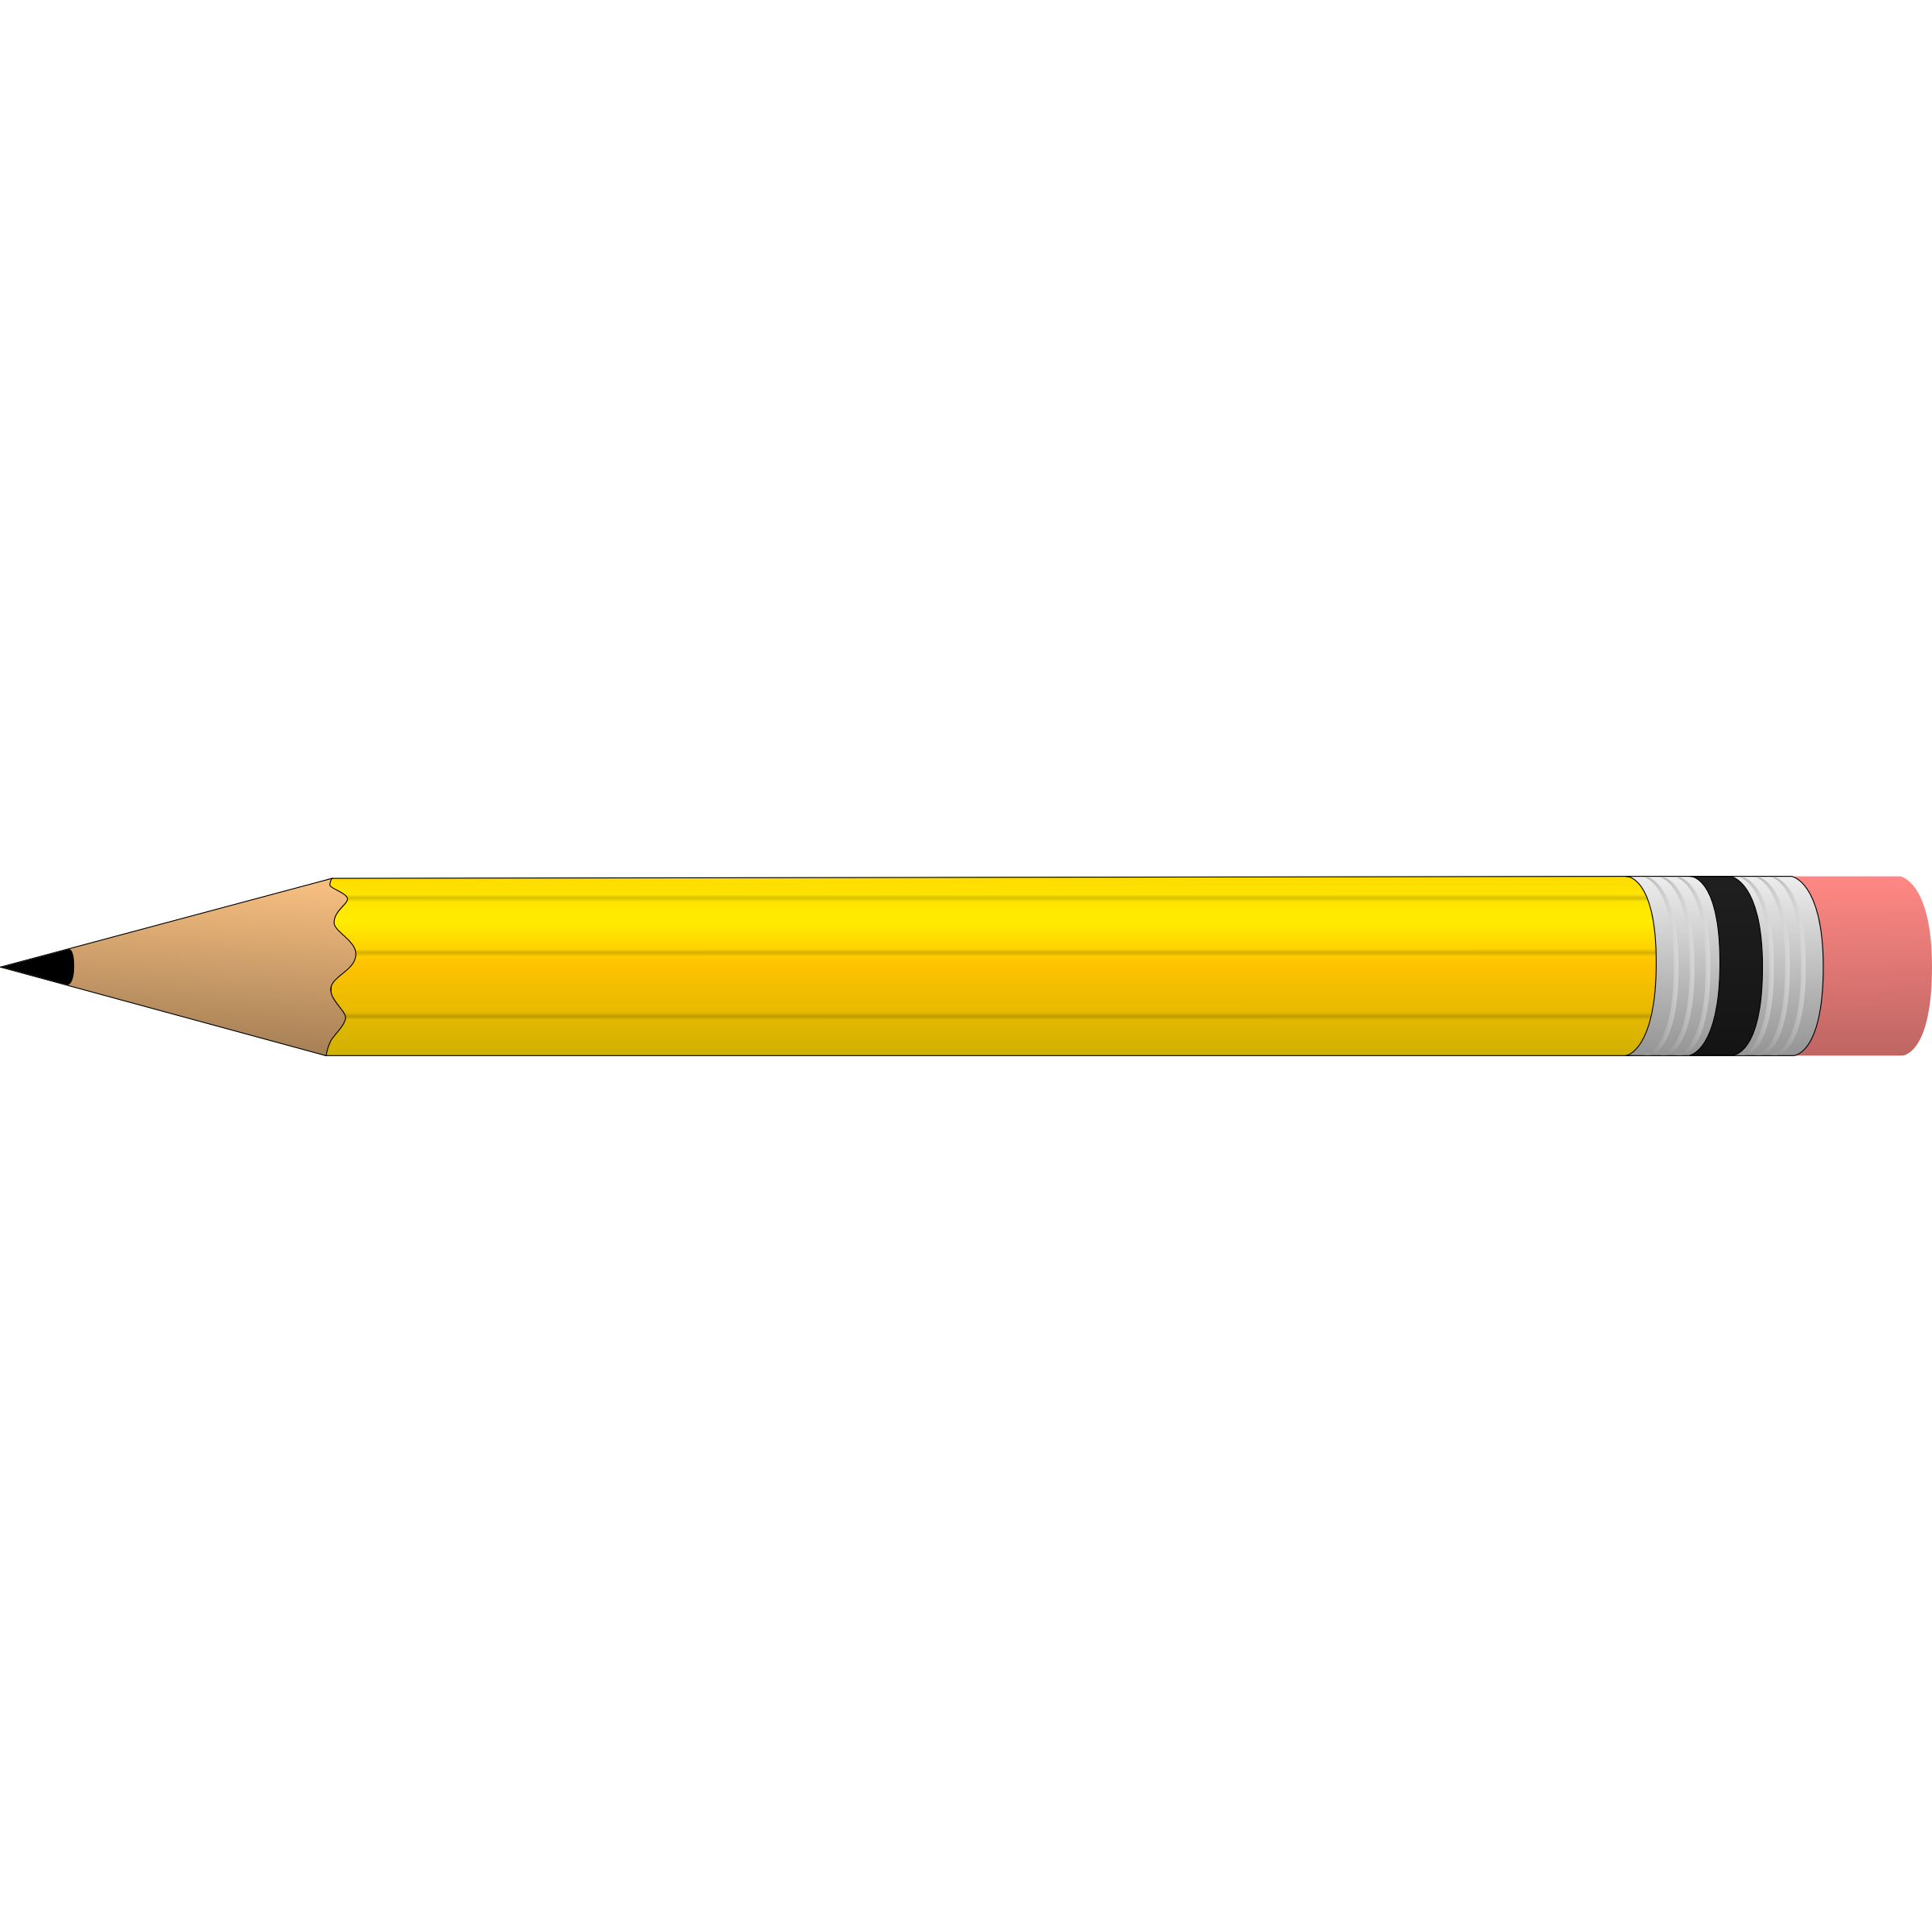 Pencil clipart animated Clipart download clip art free